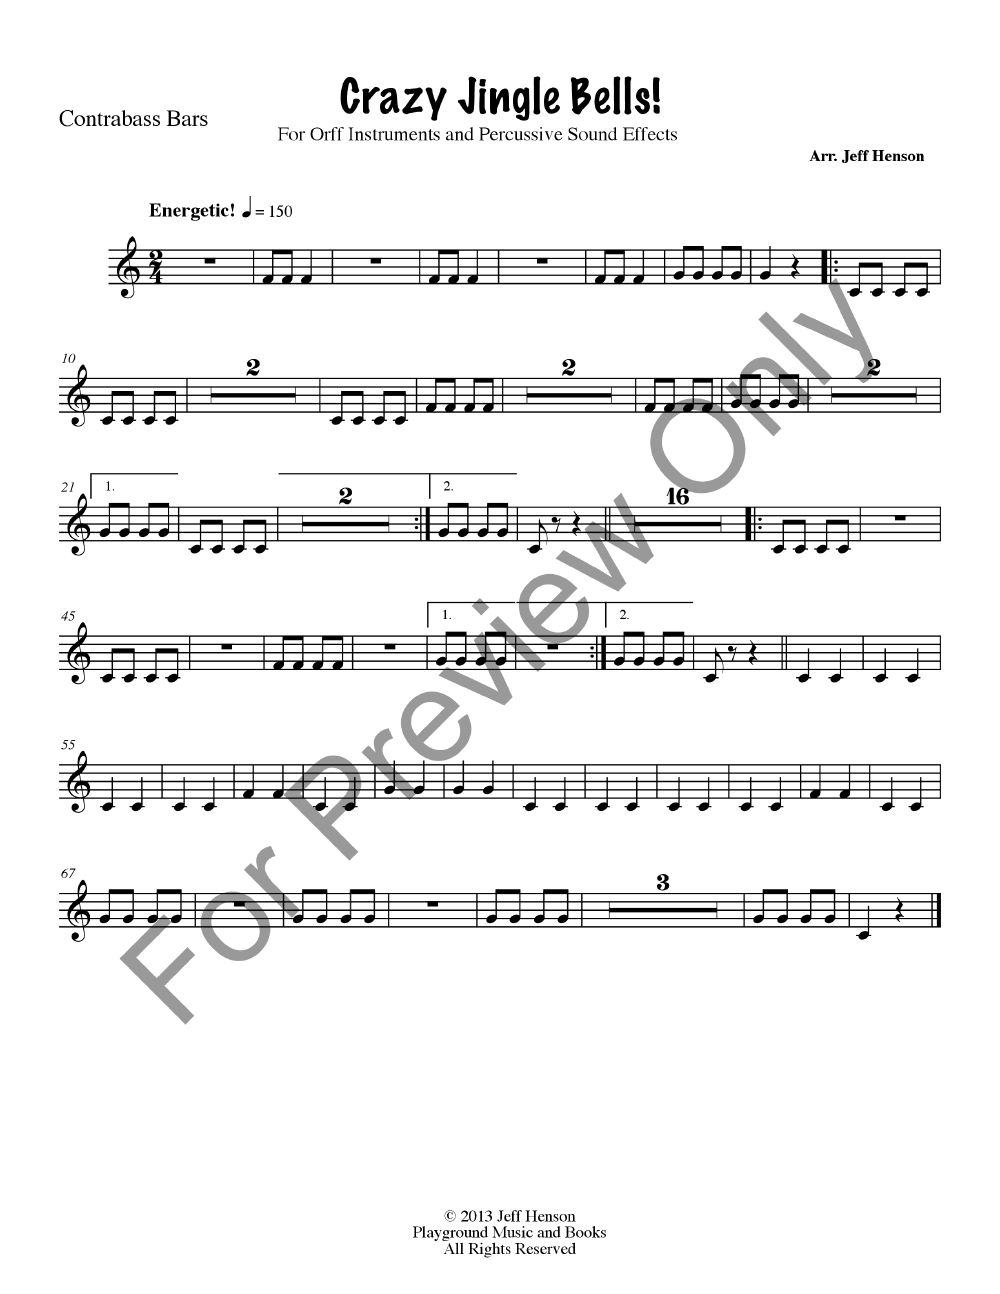 Crazy Jingle Bells Percussion Ensemble Jw Pepper Sheet Music